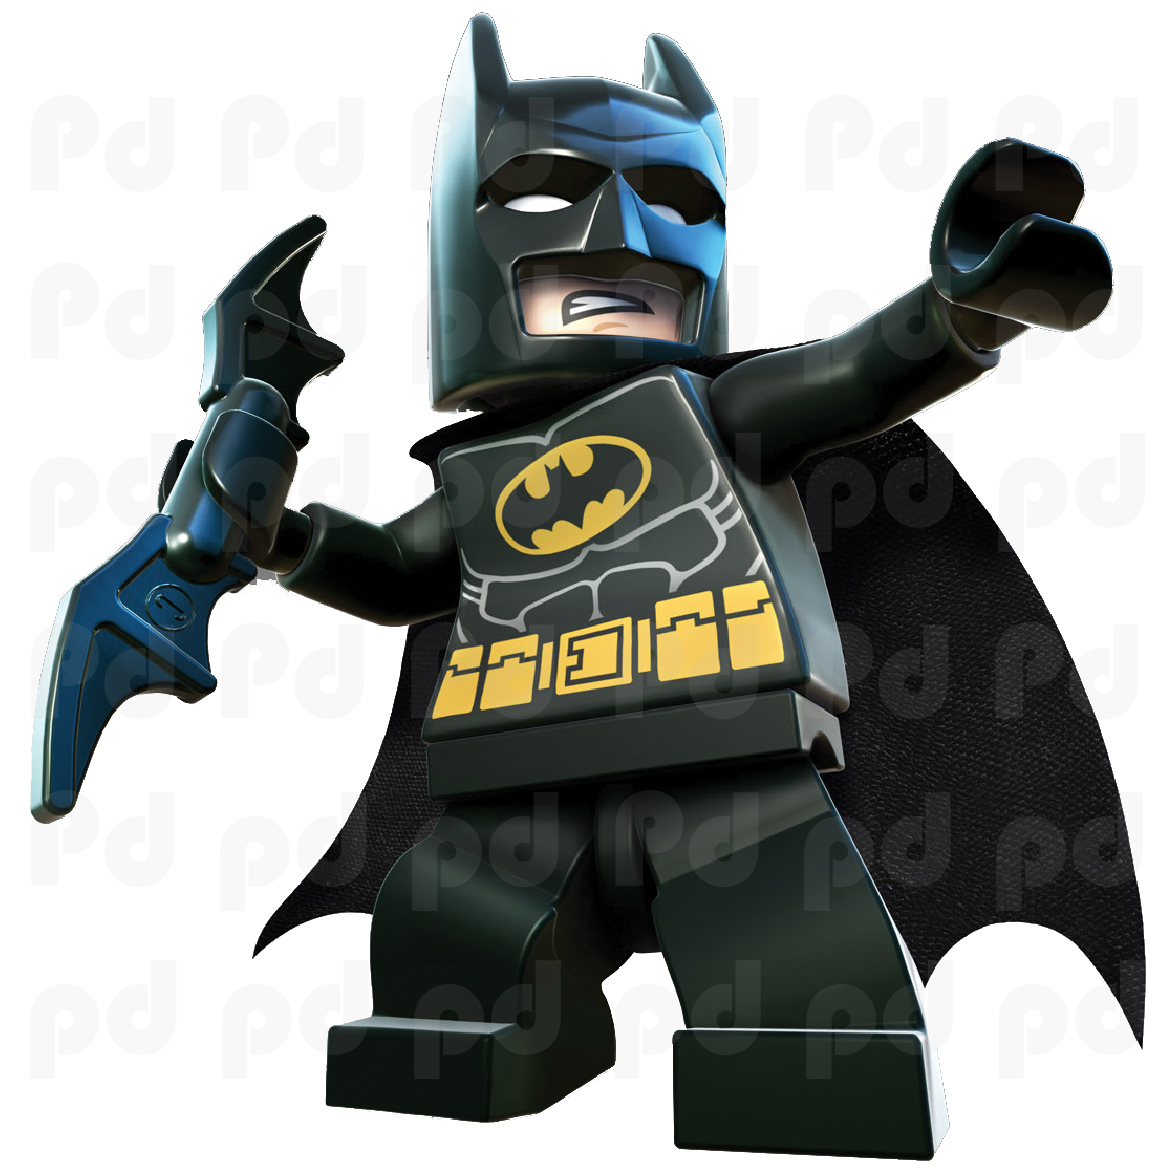 Bathroom Mirror Designs Lego Batman Wall Decal Superhero Wall Design The Dark